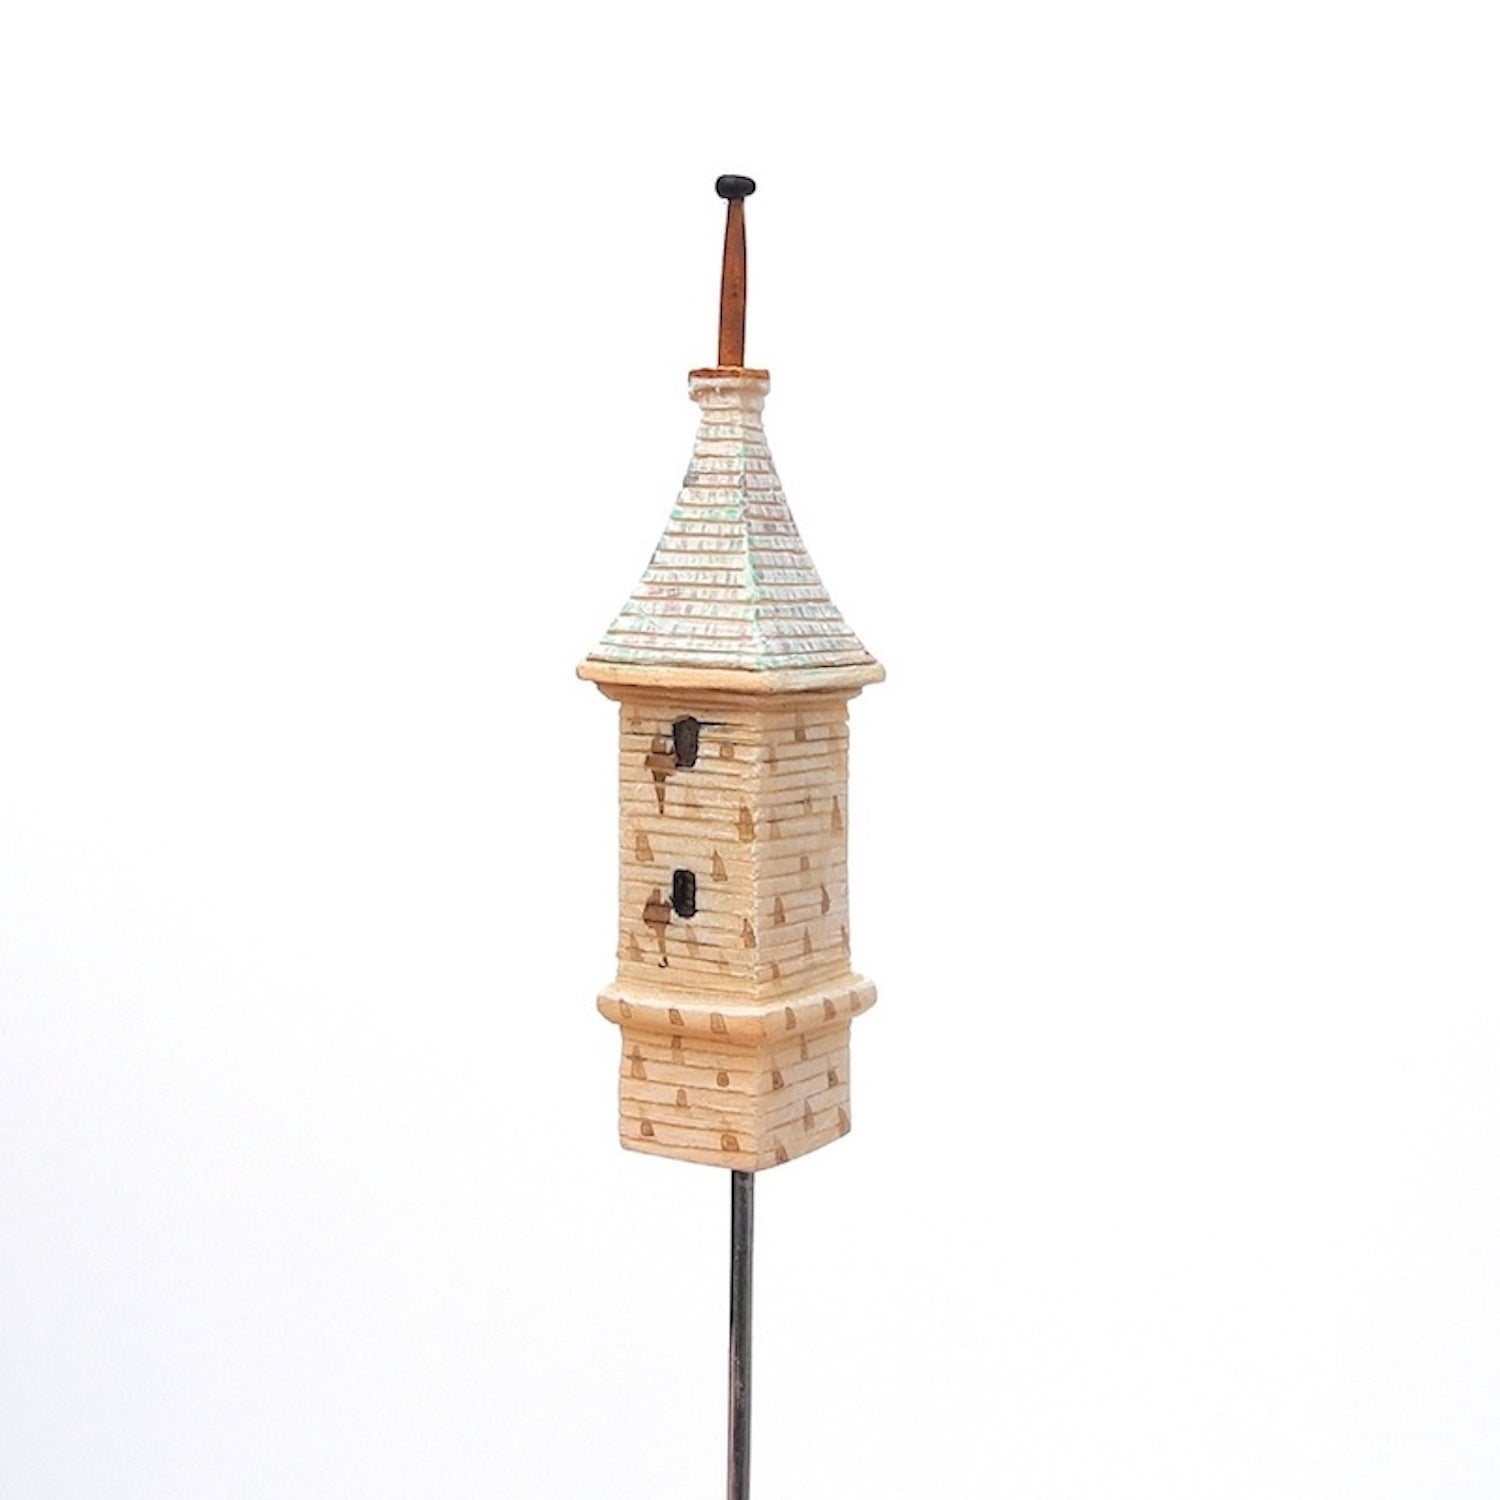 Tower Birdhouse with Steeple